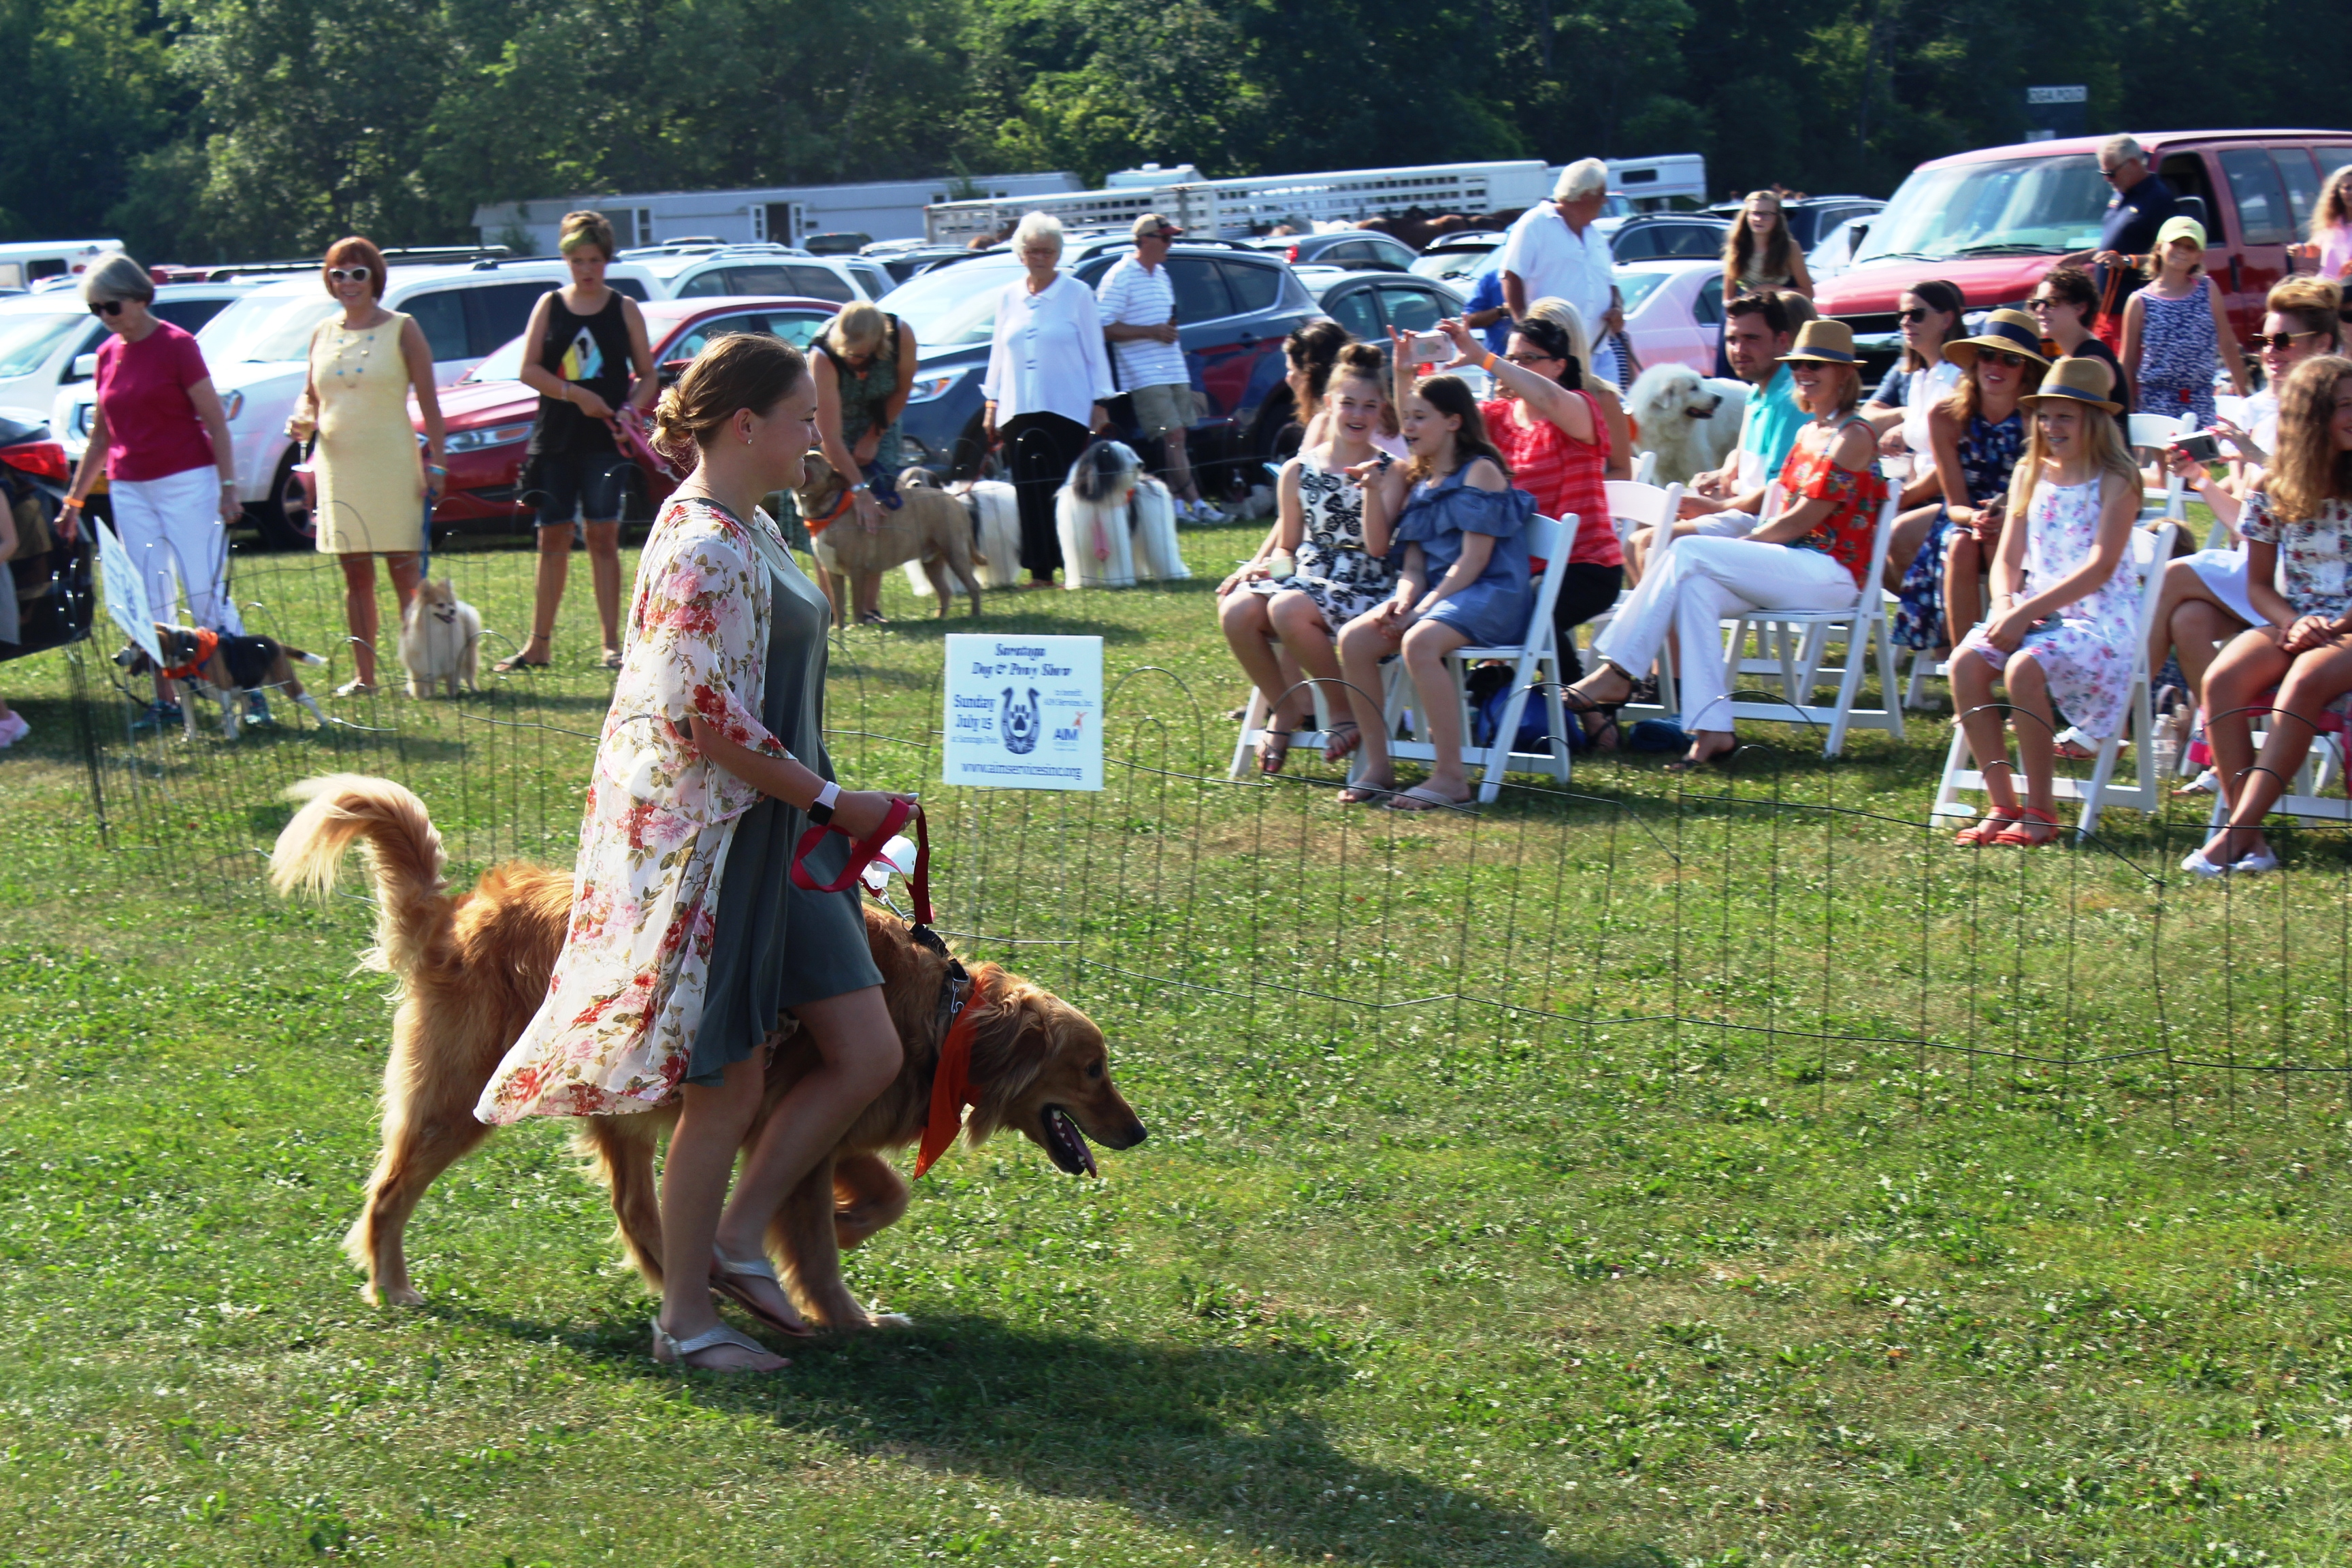 Woman walking dog at the Saratoga Dog & Pony Show to benefit AIM Services, Inc.